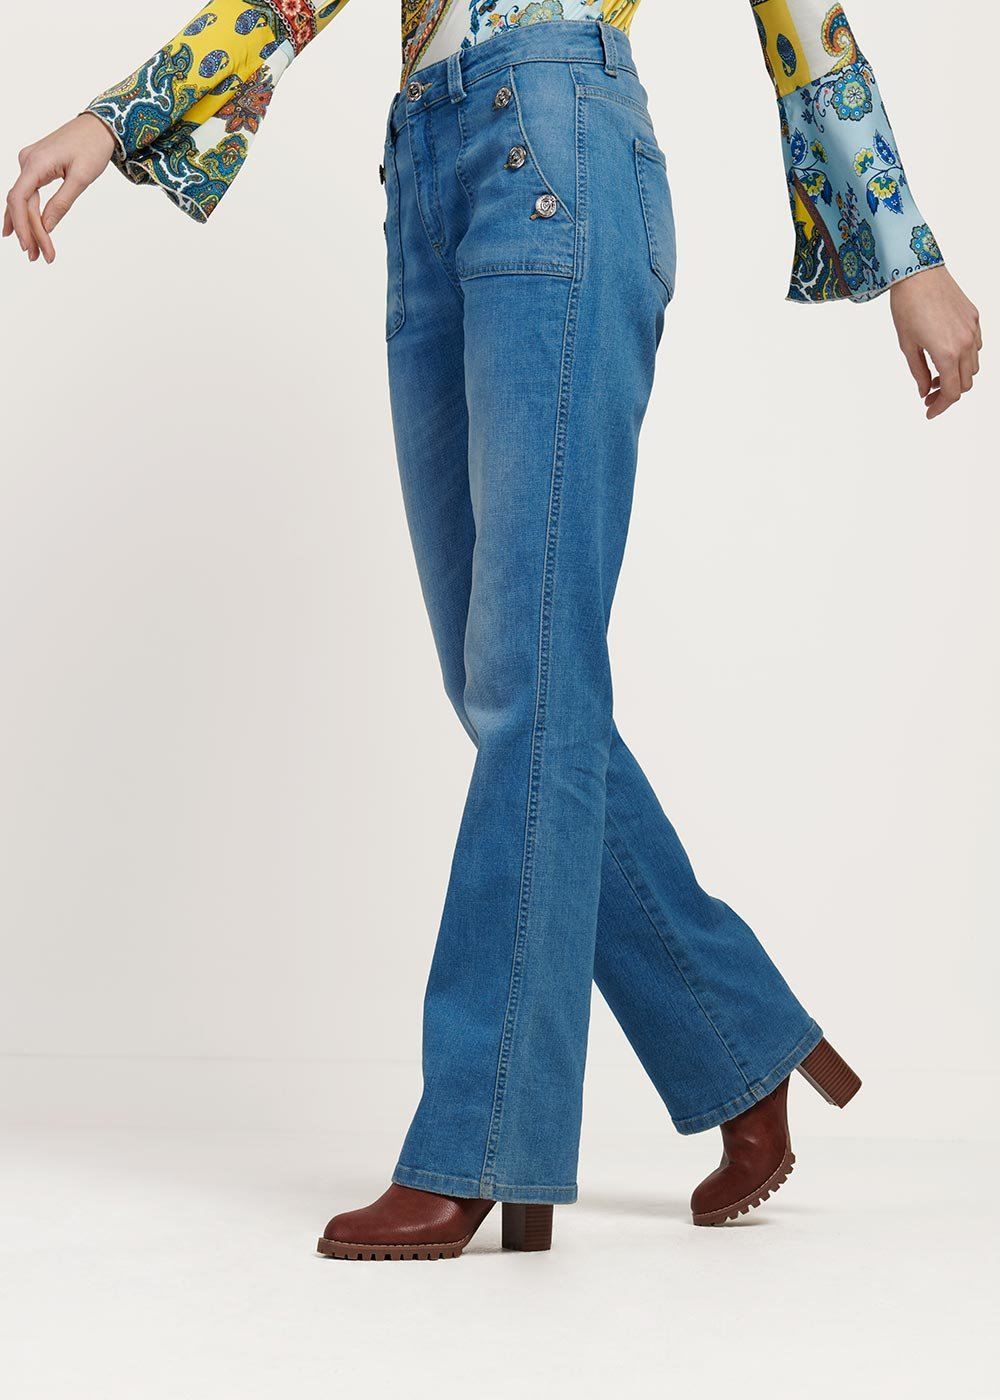 Dotty denim with front pockets detail